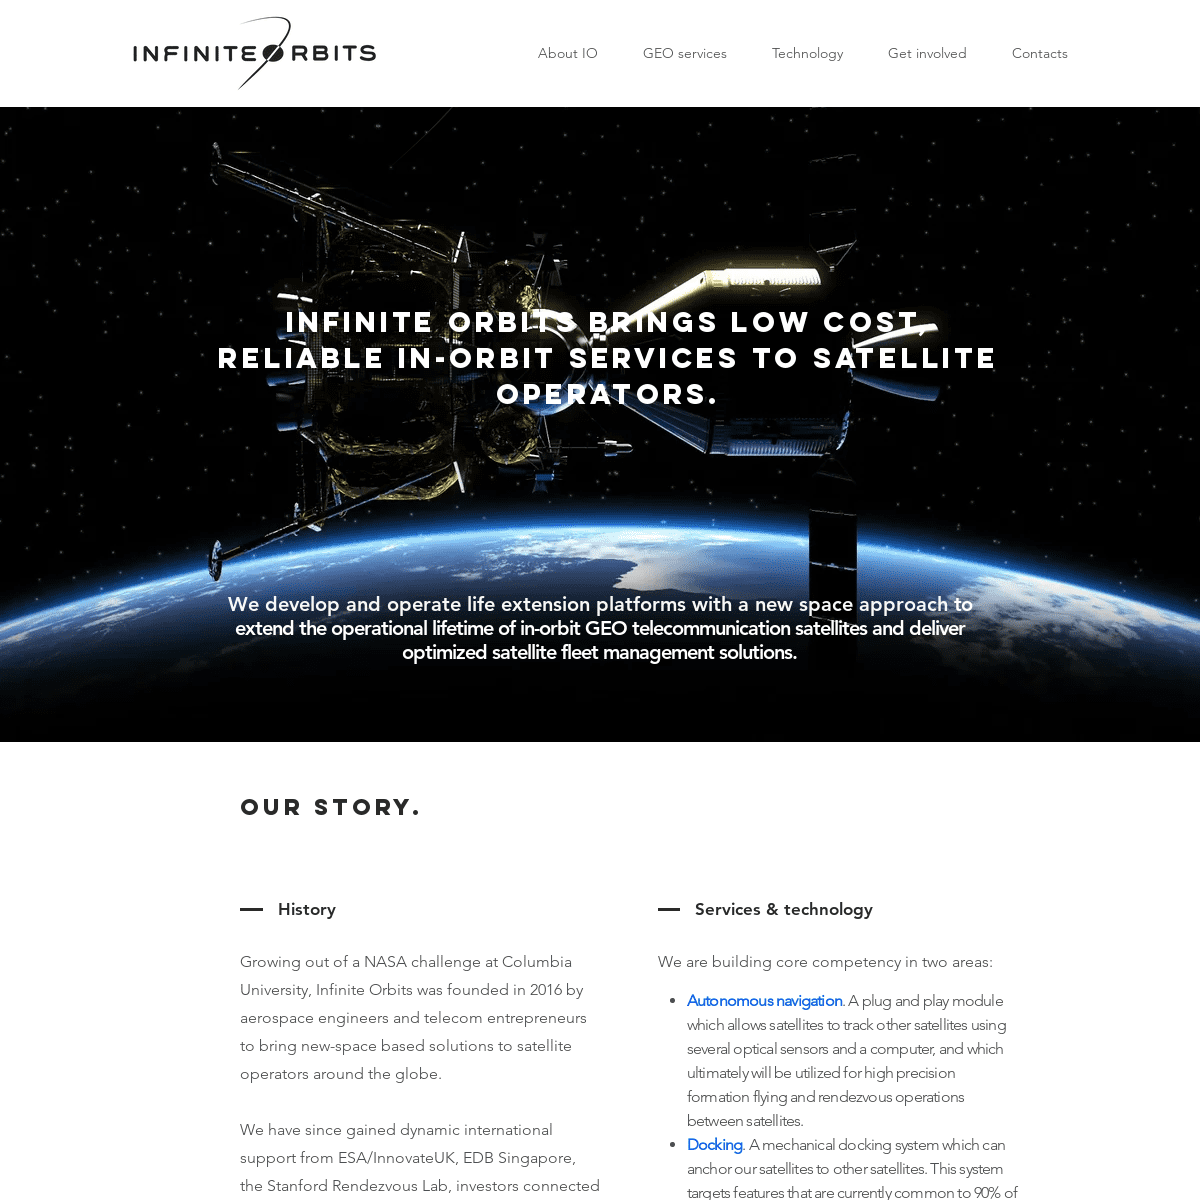 ArchiveBay.com - infiniteorbits.io - Infinite Orbits